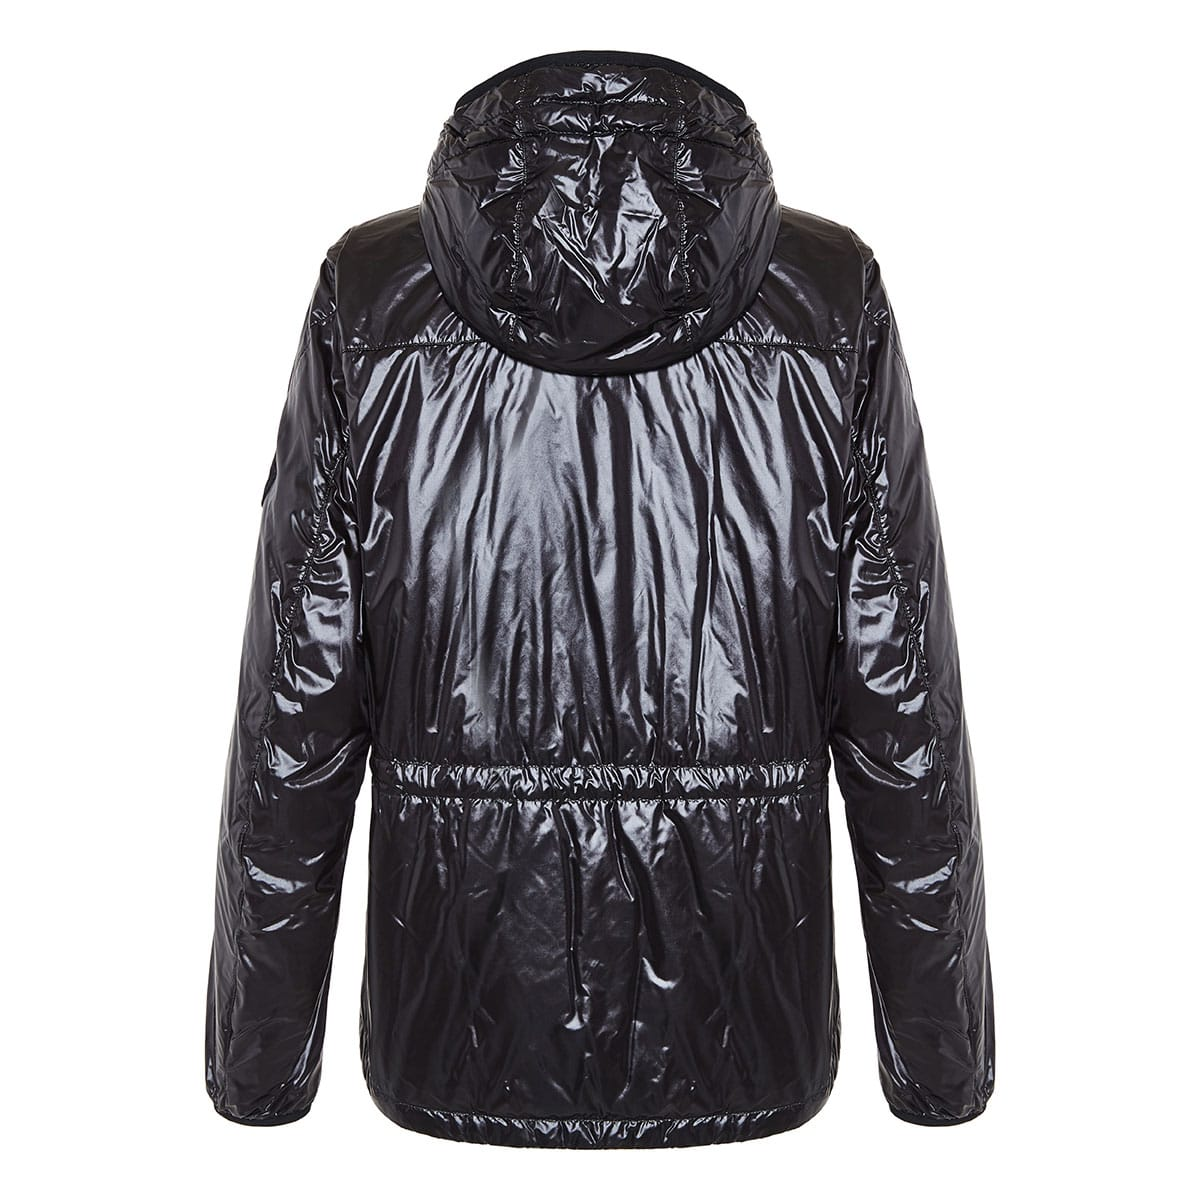 2 MONCLER 1952+VALEXTRA Sawyer nylon jacket